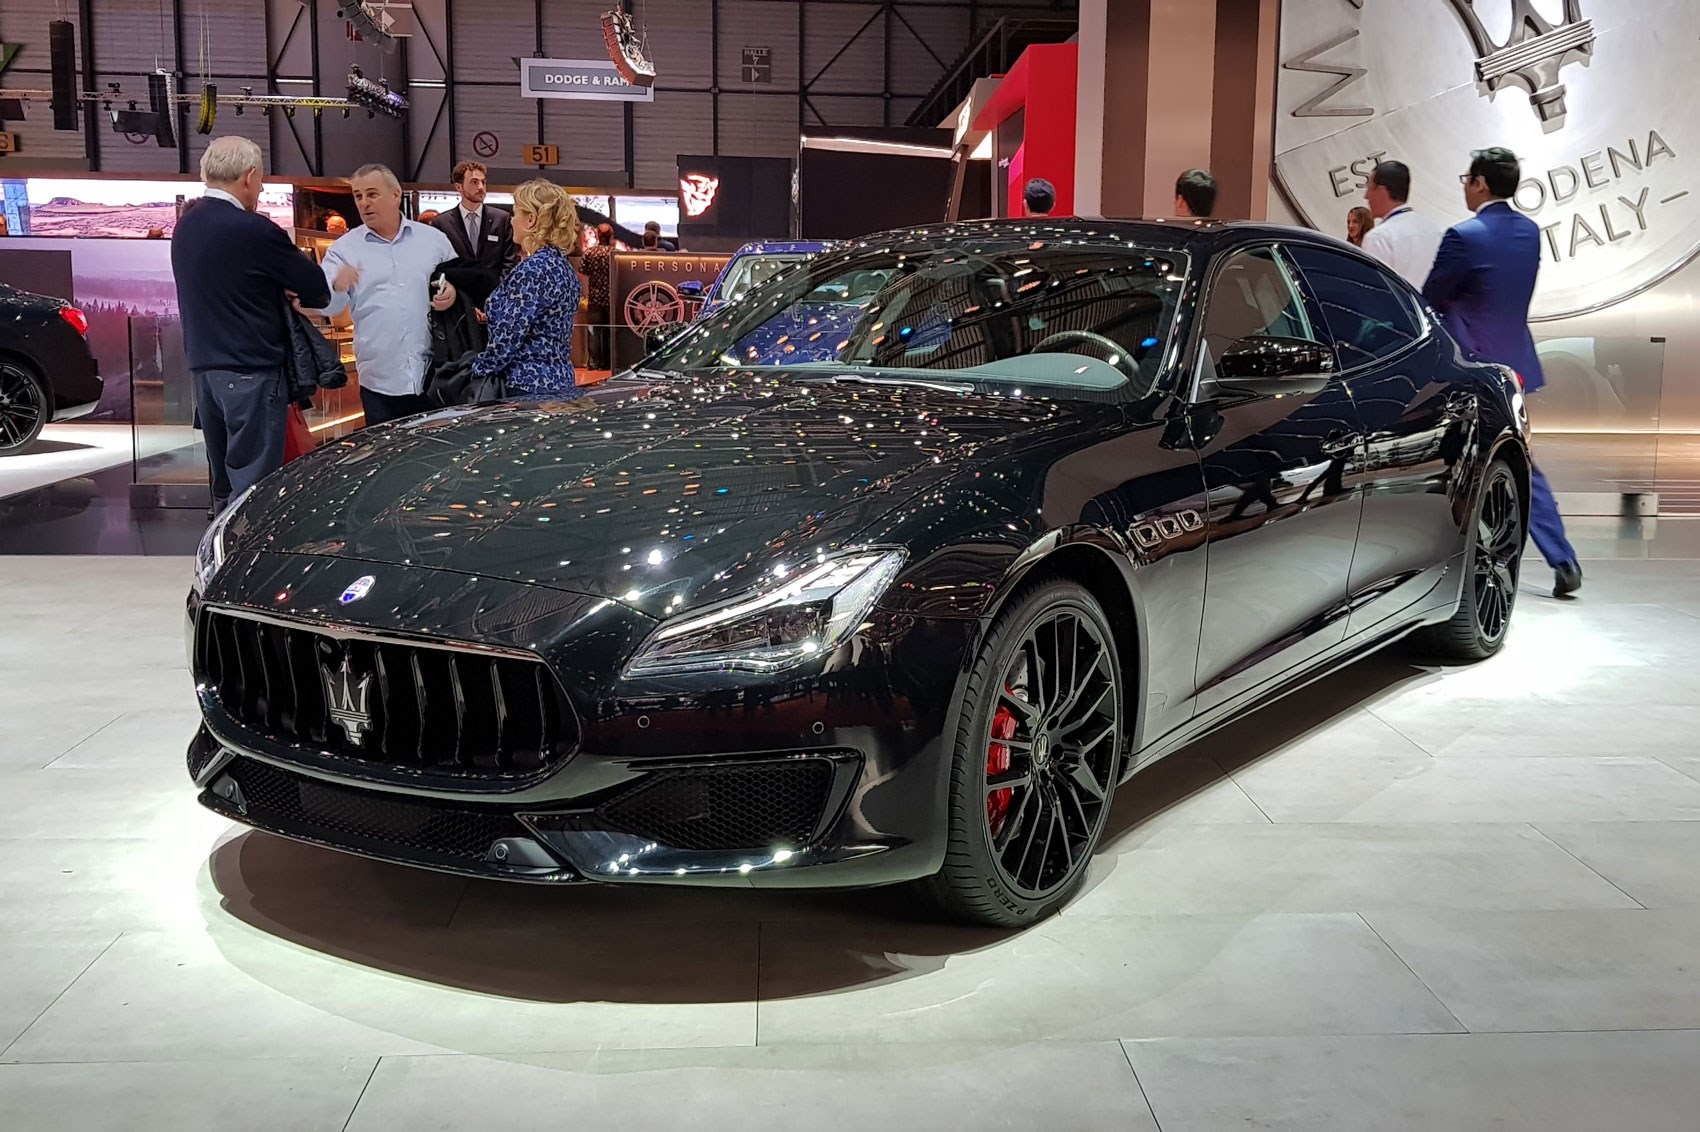 Murdered Out Masers Maserati Nerissimo Editions Are Here